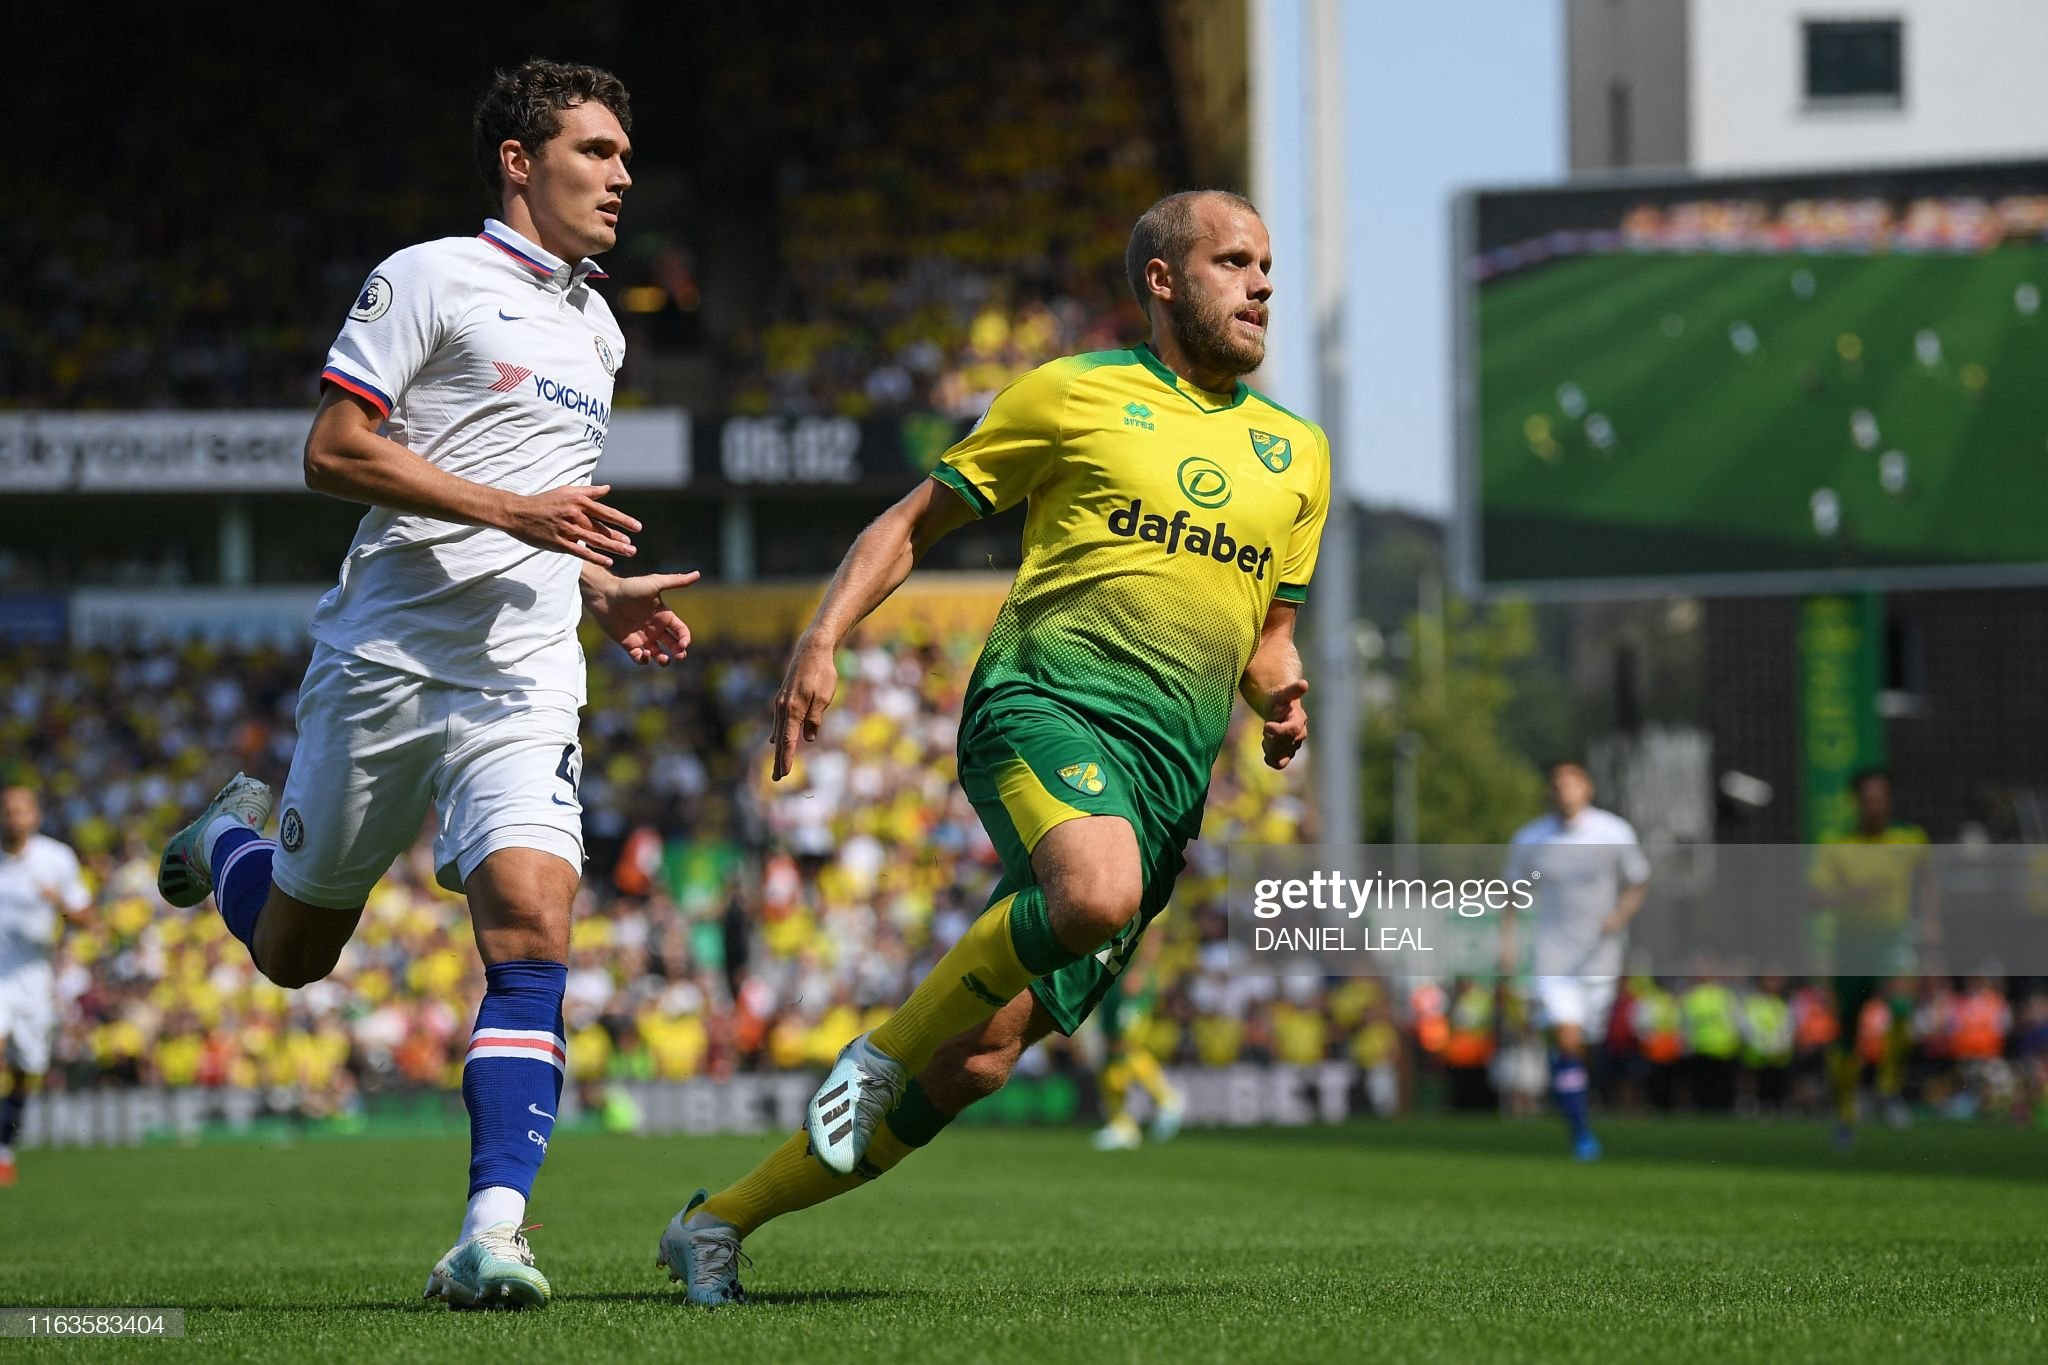 Chelsea vs Norwich preview, prediction and odds